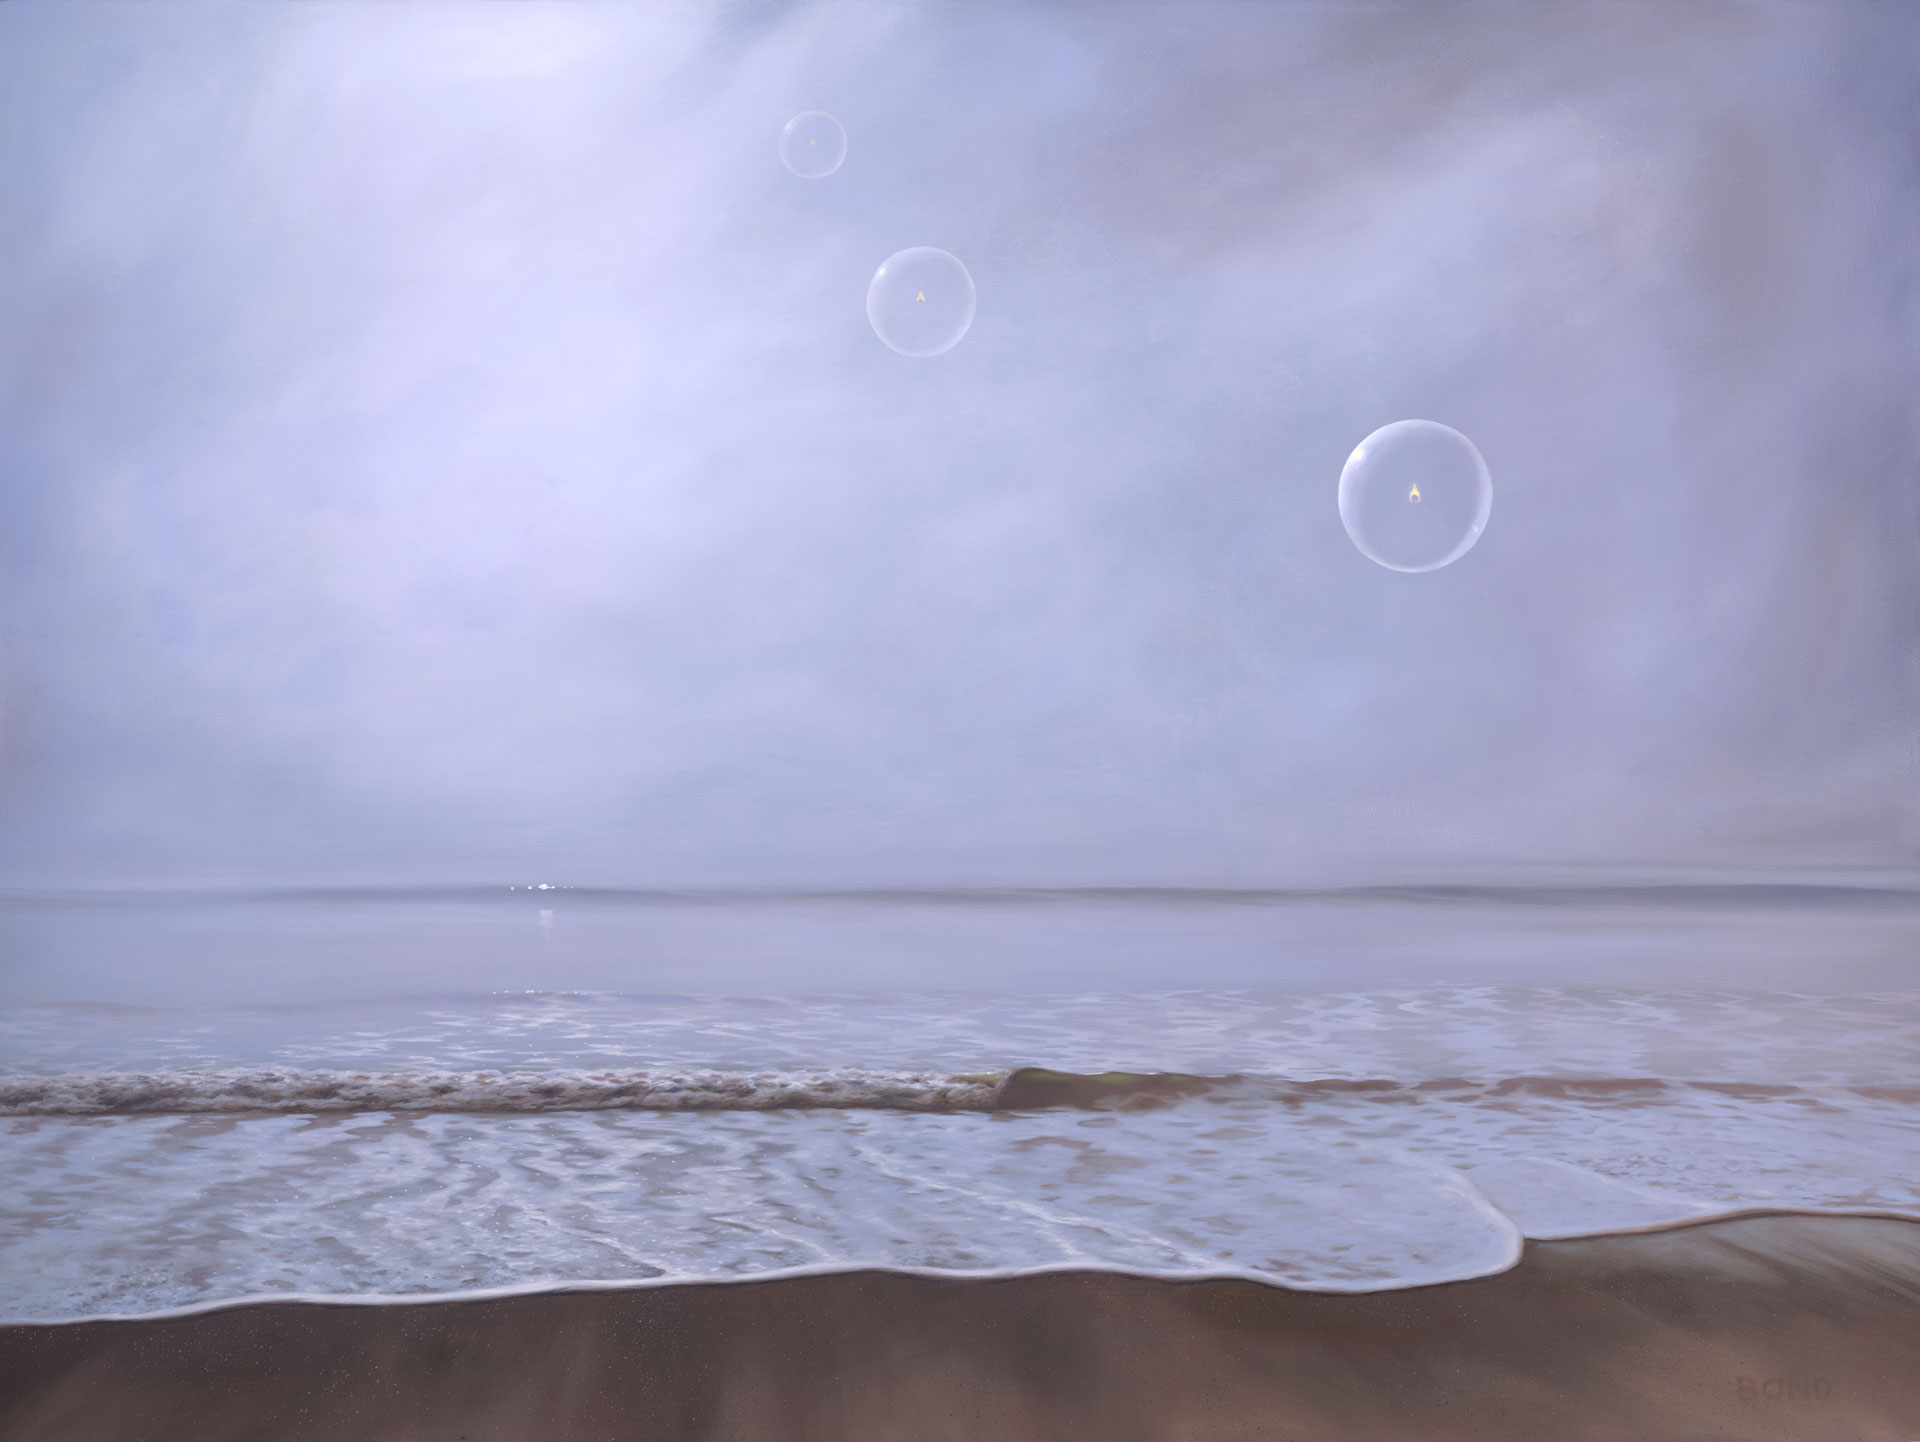 Sojourn, painting of a foggy beach with three floating bubbles with flickering flames inside, painting about death, art meaning hospice, art about life after death, painting depicting the afterlife, painting with orbs, misty ocean scene, soulful uplifting inspirational art, soul stirring illusion art, romantic art,  surrealism, surreal art, dreamlike imagery, fanciful art, fantasy art, dreamscape visual, metaphysical art, spiritual painting, metaphysical painting, spiritual art, whimsical art, whimsy art, dream art, fantastic realism art, limited edition giclee, signed art print, fine art reproduction, original magic realism oil painting by Paul Bond